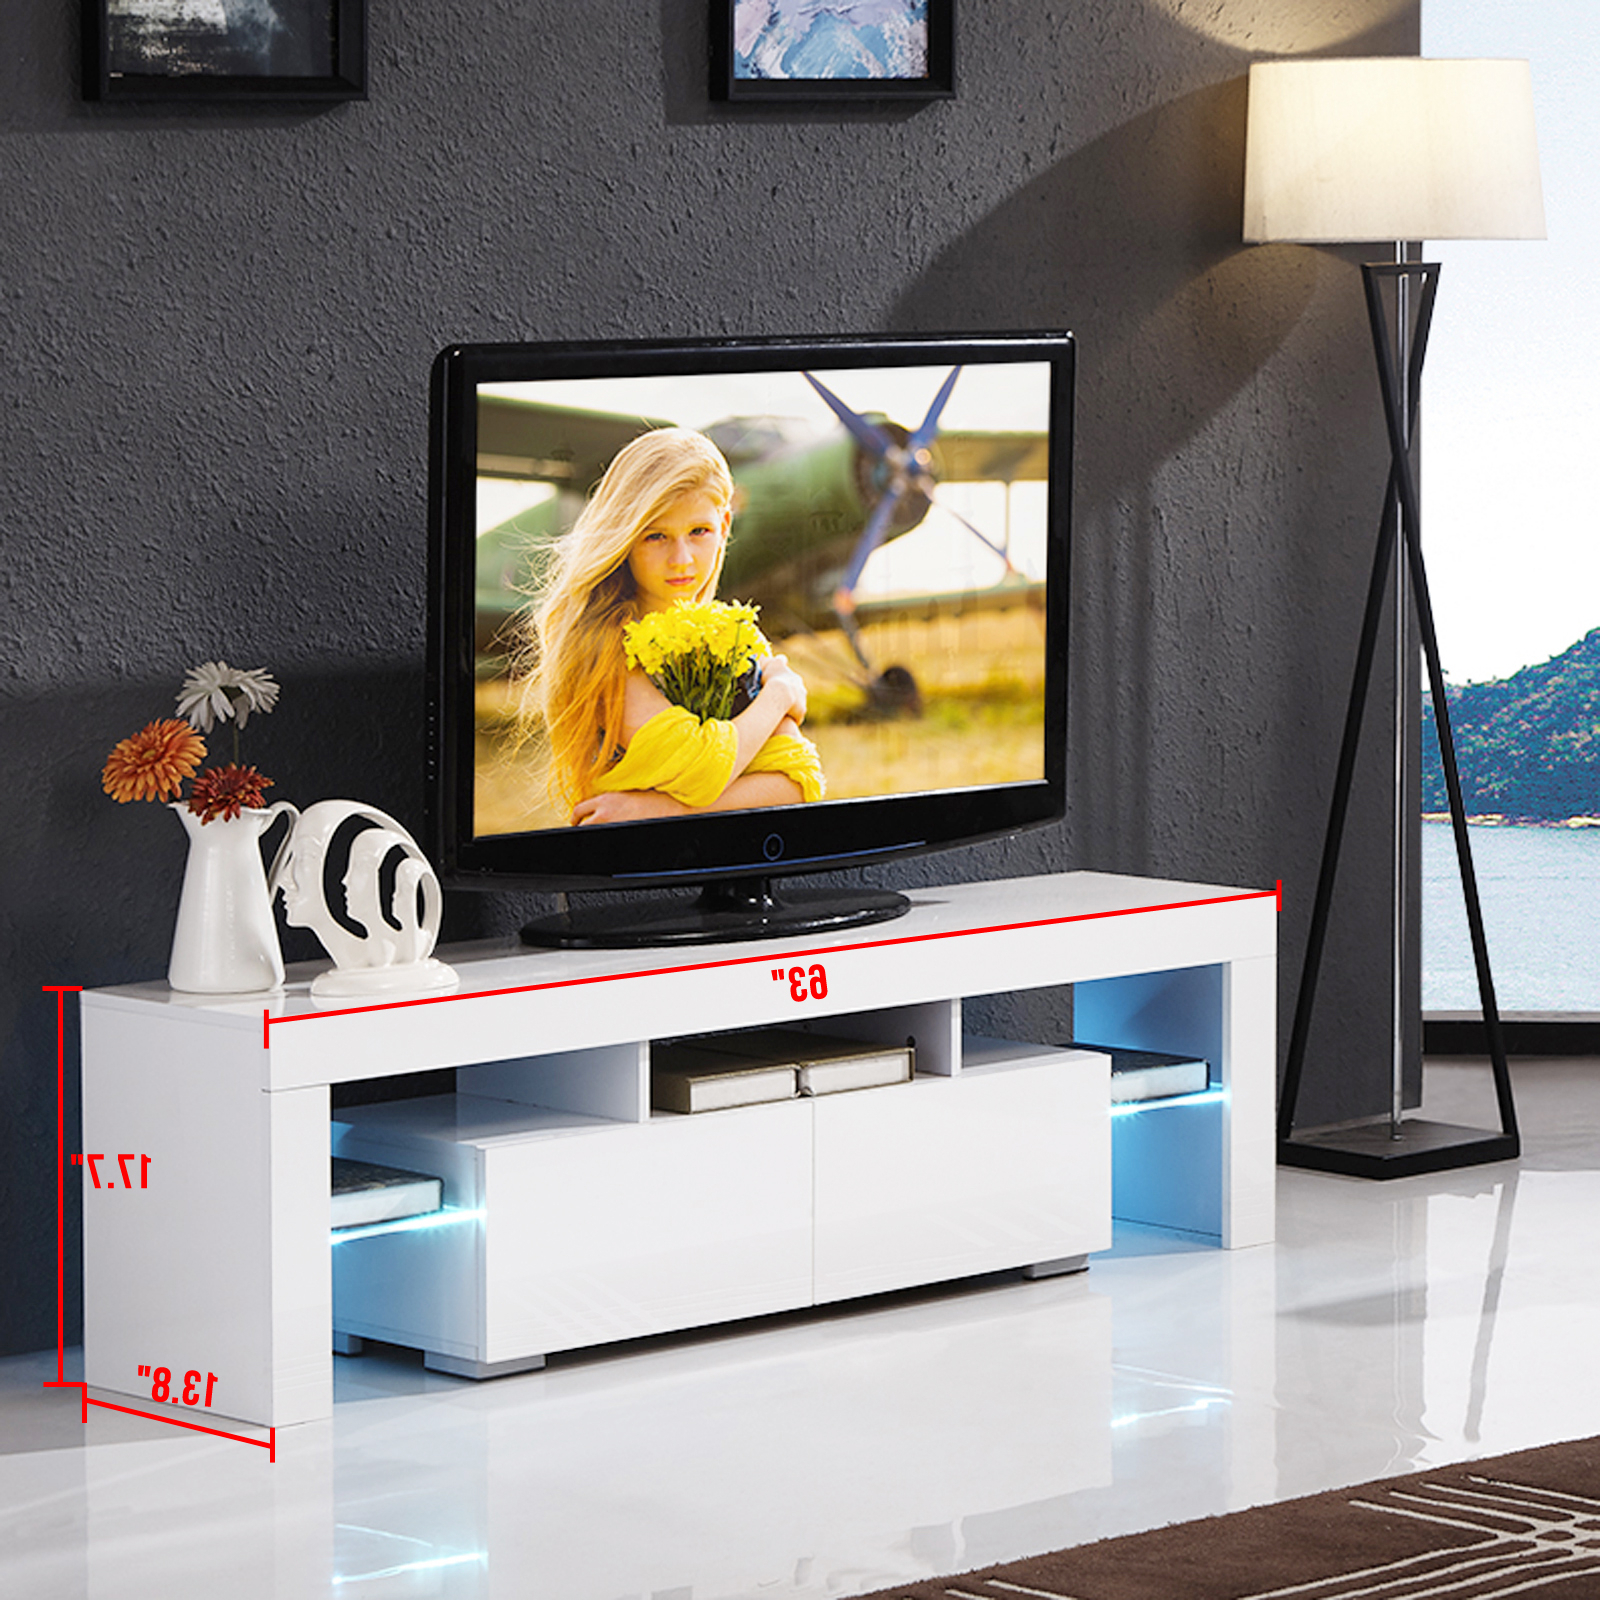 Fashionable High Gloss White Tv Stand Unit Cabinet W/led Shelves 2 Intended For Tv Stands With 2 Open Shelves 2 Drawers High Gloss Tv Unis (View 1 of 10)